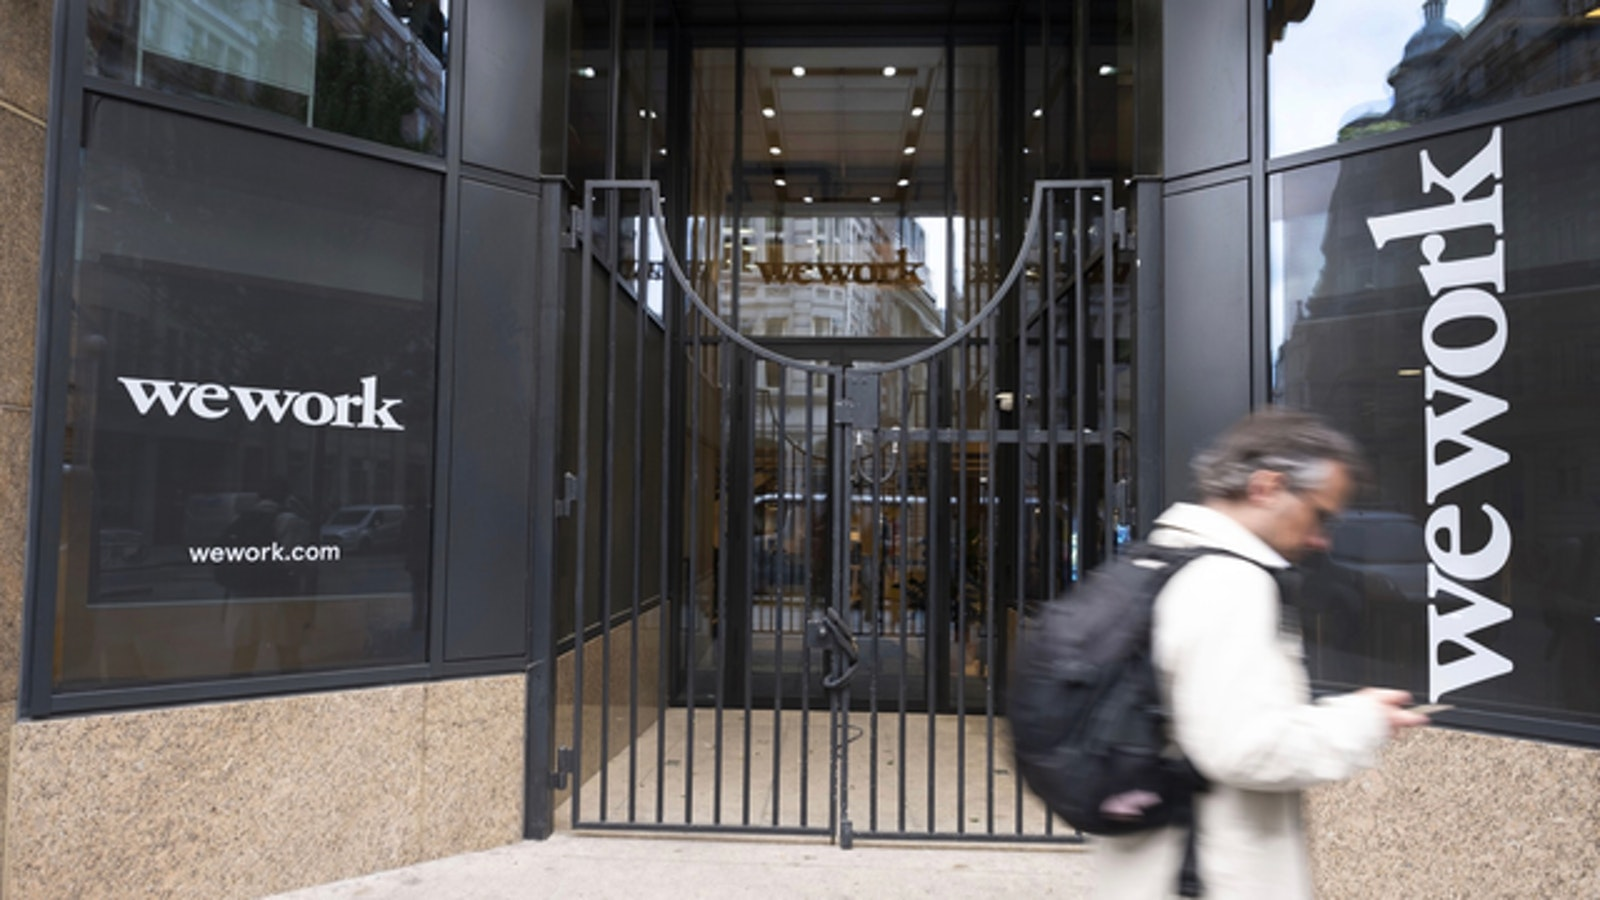 A WeWork location in London. Photo: Bloomberg